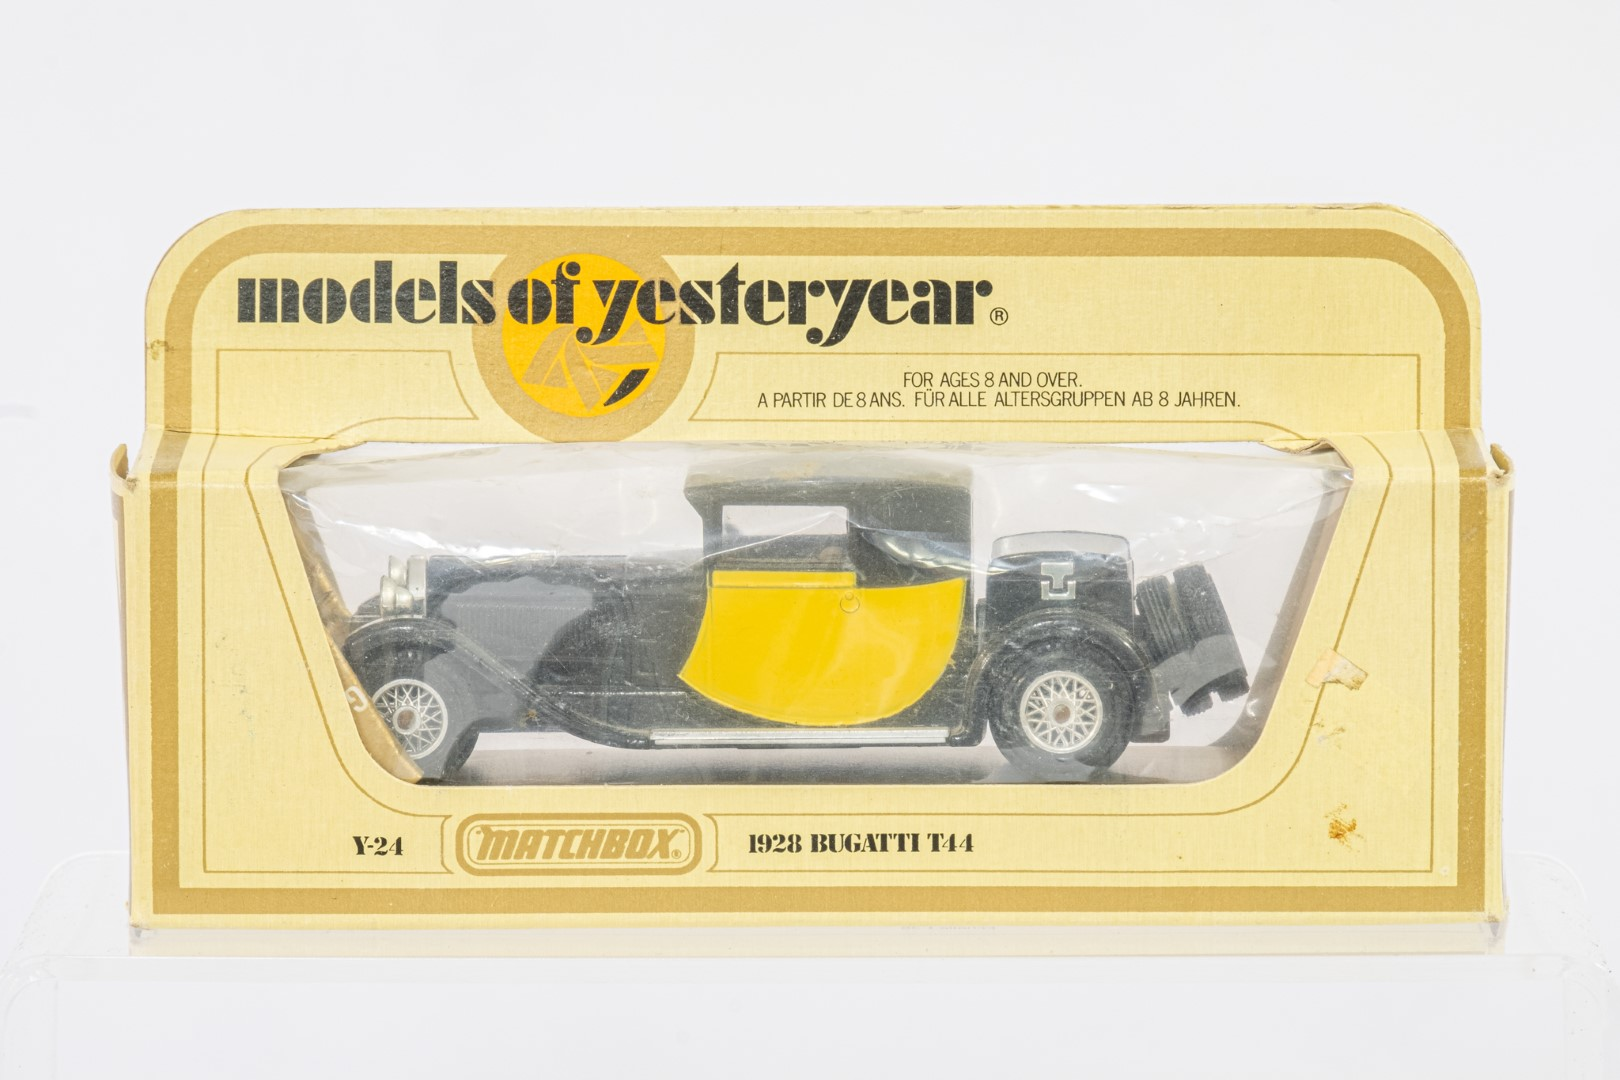 Matchbox 3 x Models of Yesteryear cars - - Image 2 of 4